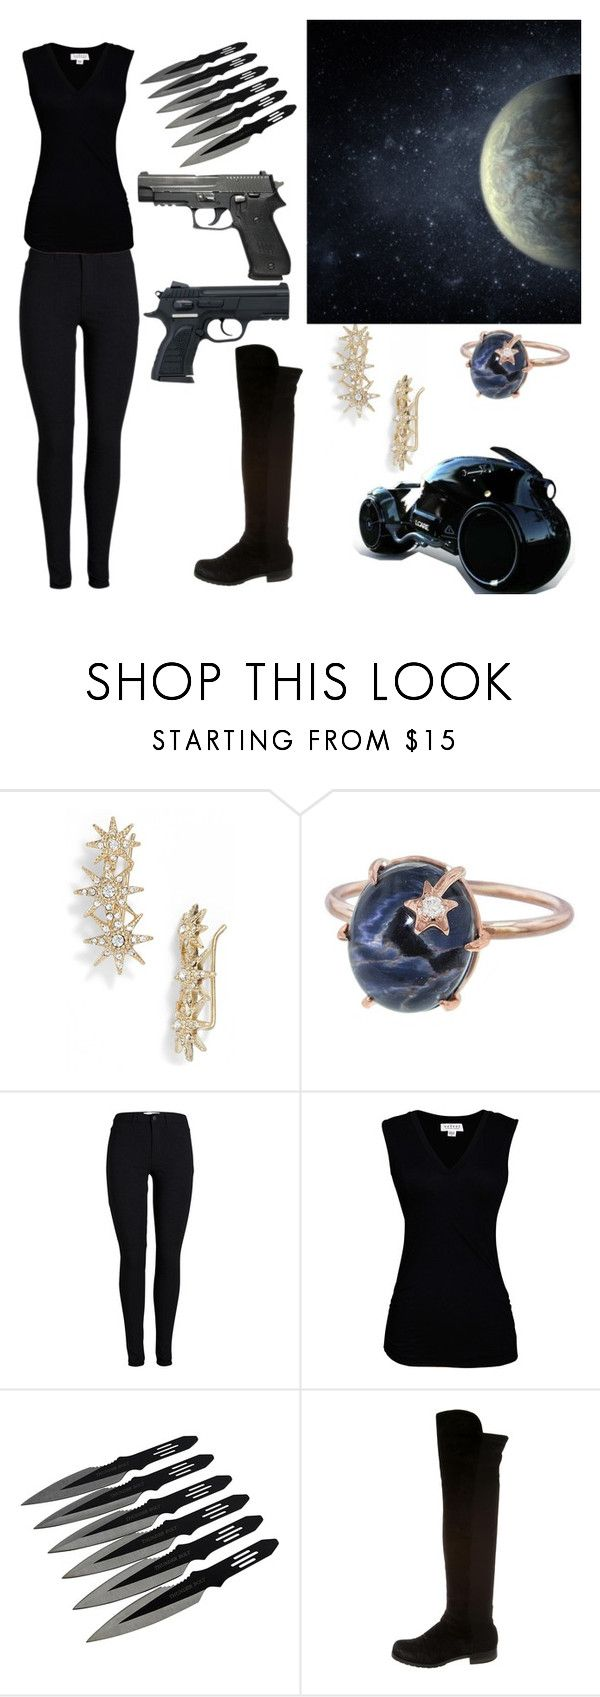 """""""Space assassin"""" by trinitythetrombone ❤ liked on Polyvore featuring Jenny Packham, Spacecraft, Andrea Fohrman, Velvet by Graham & Spencer, Stuart Weitzman and yolo"""